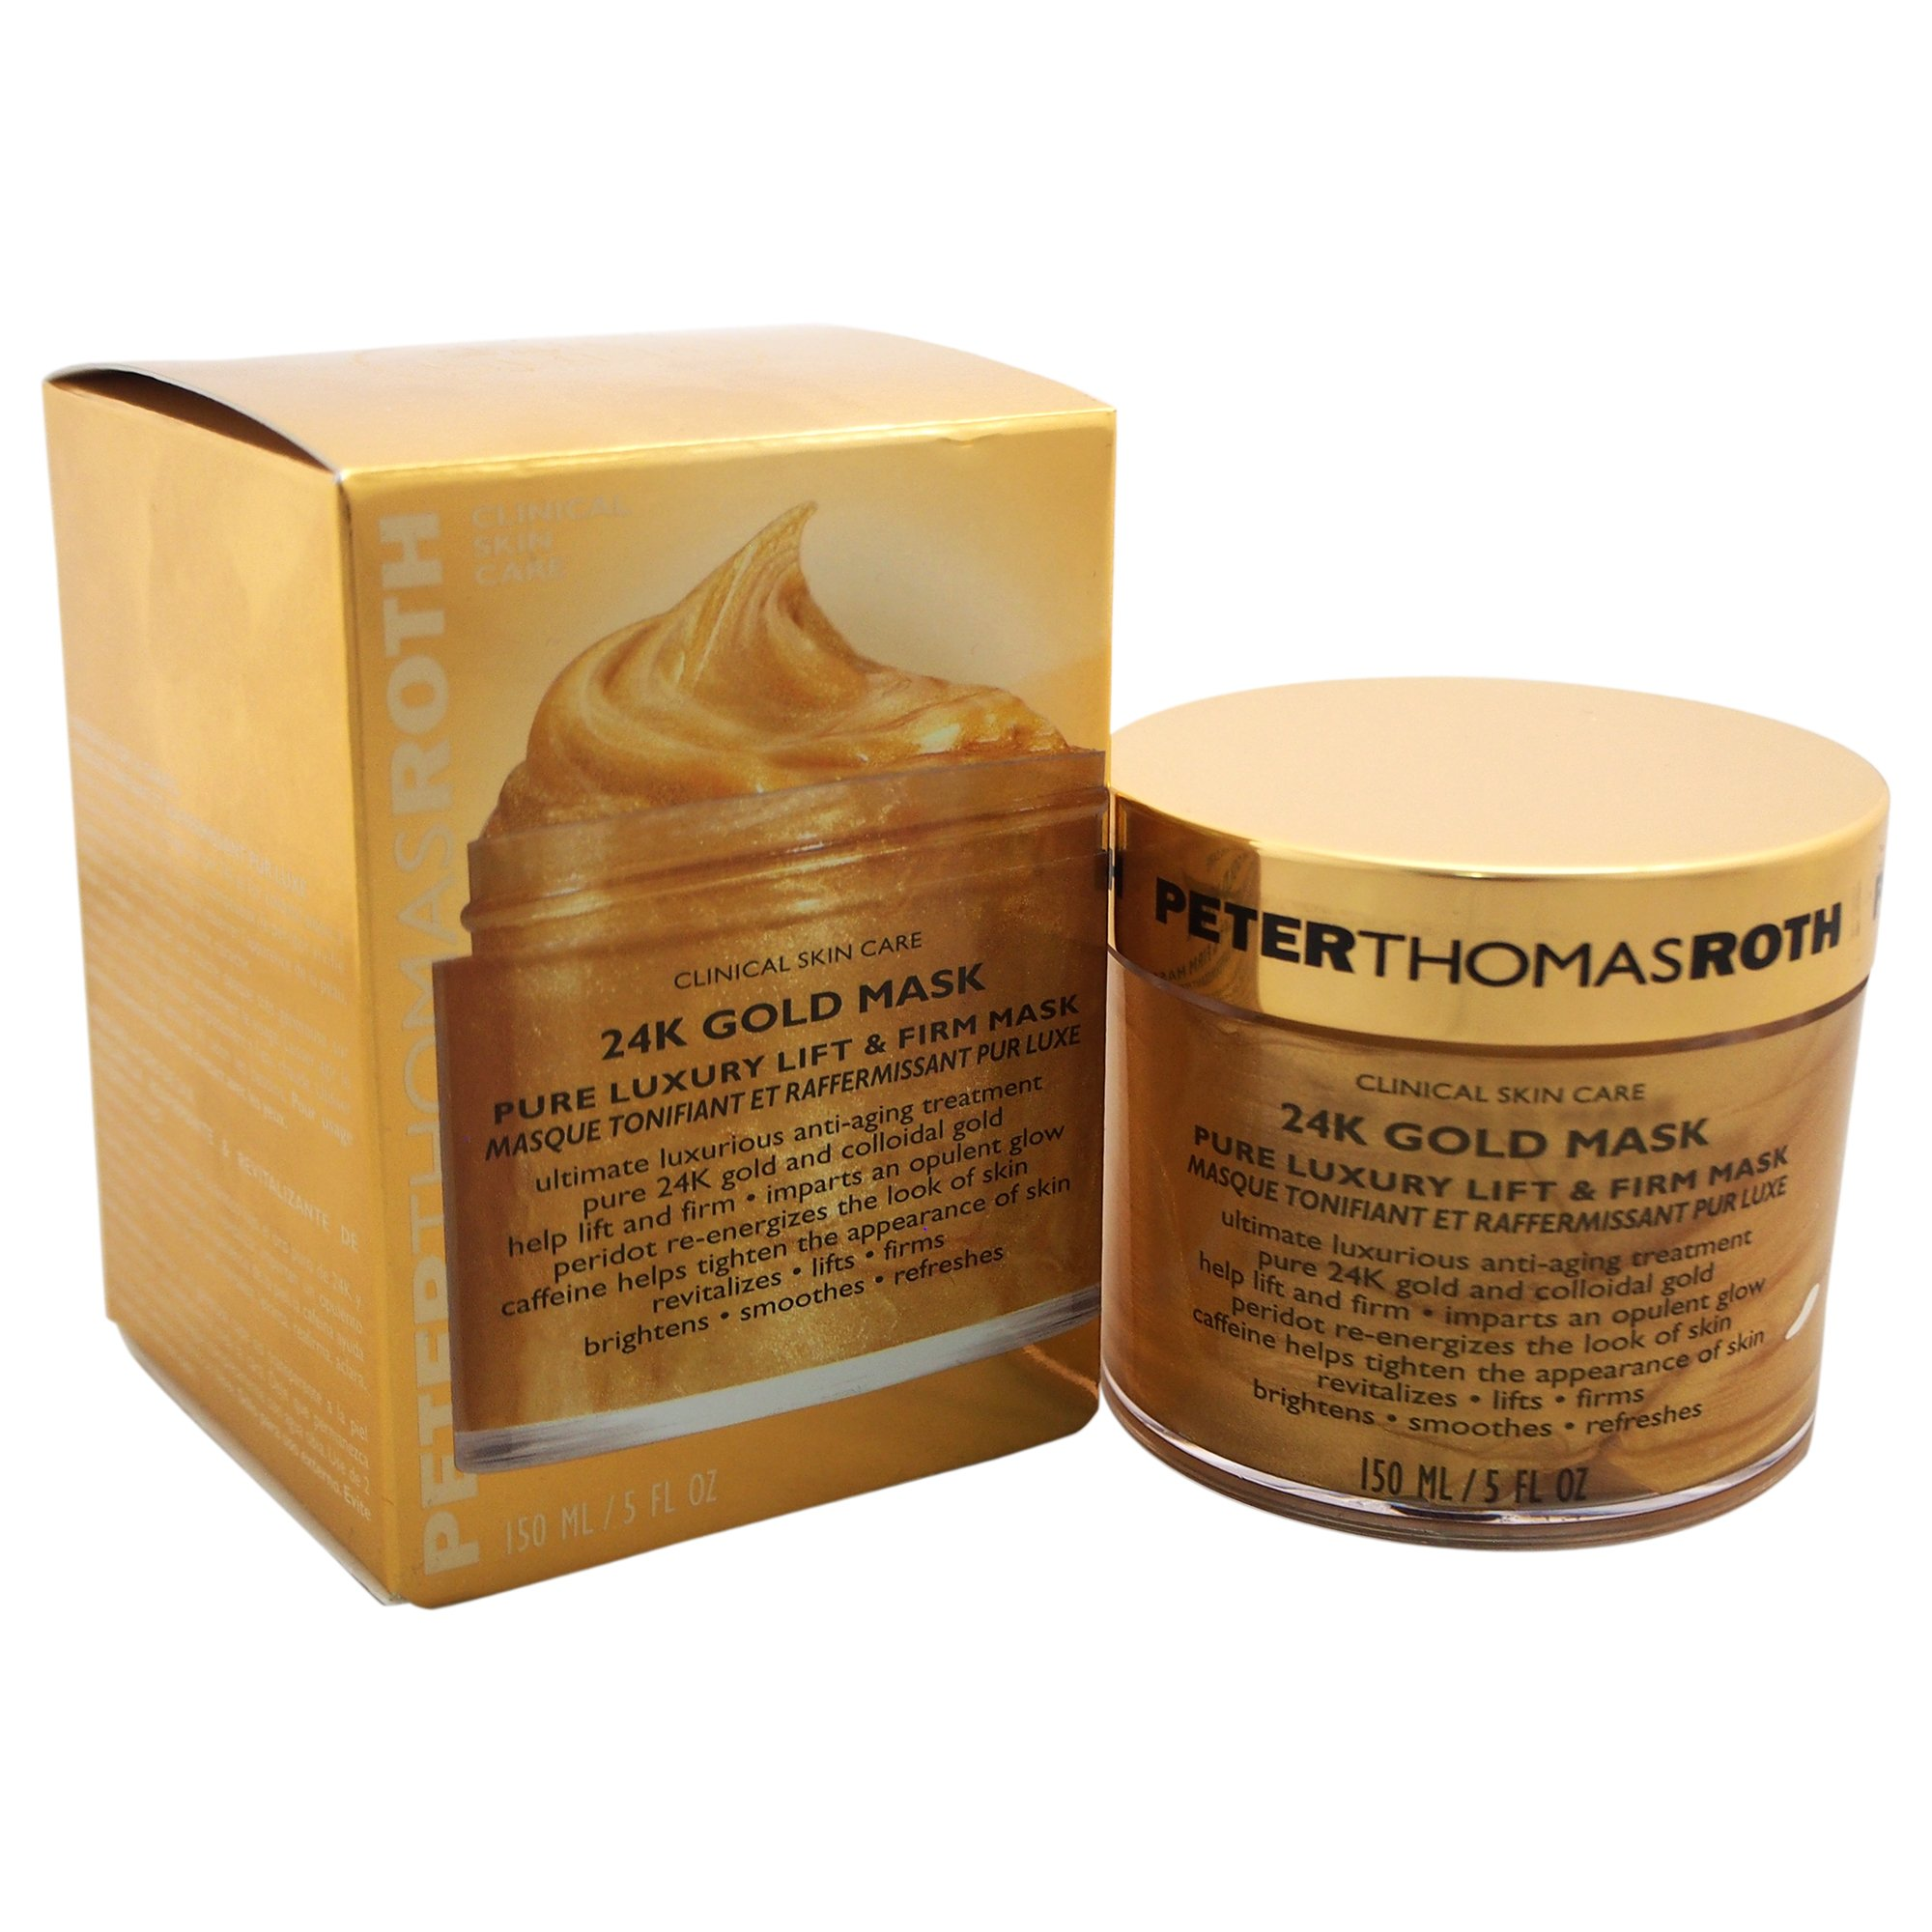 Peter Thomas Roth 24K Gold Pure Luxury Lift and Firm Mask, 5 Ounce